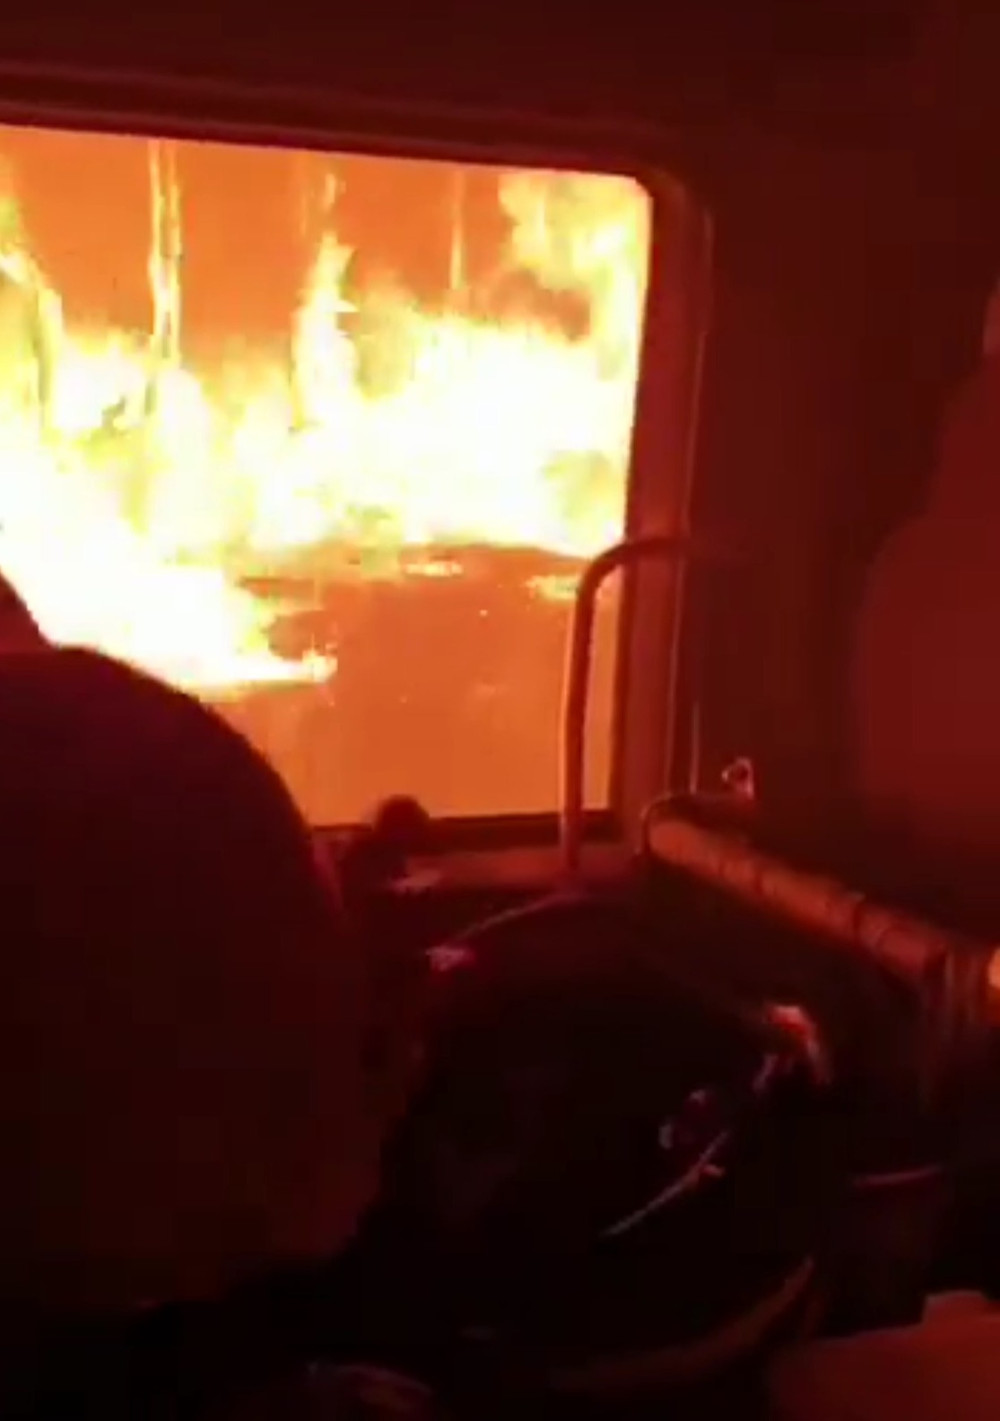 Footage from inside trucks that were not fit-for-purpose and consequently immobilised during NYE 2019/2020 fire season.